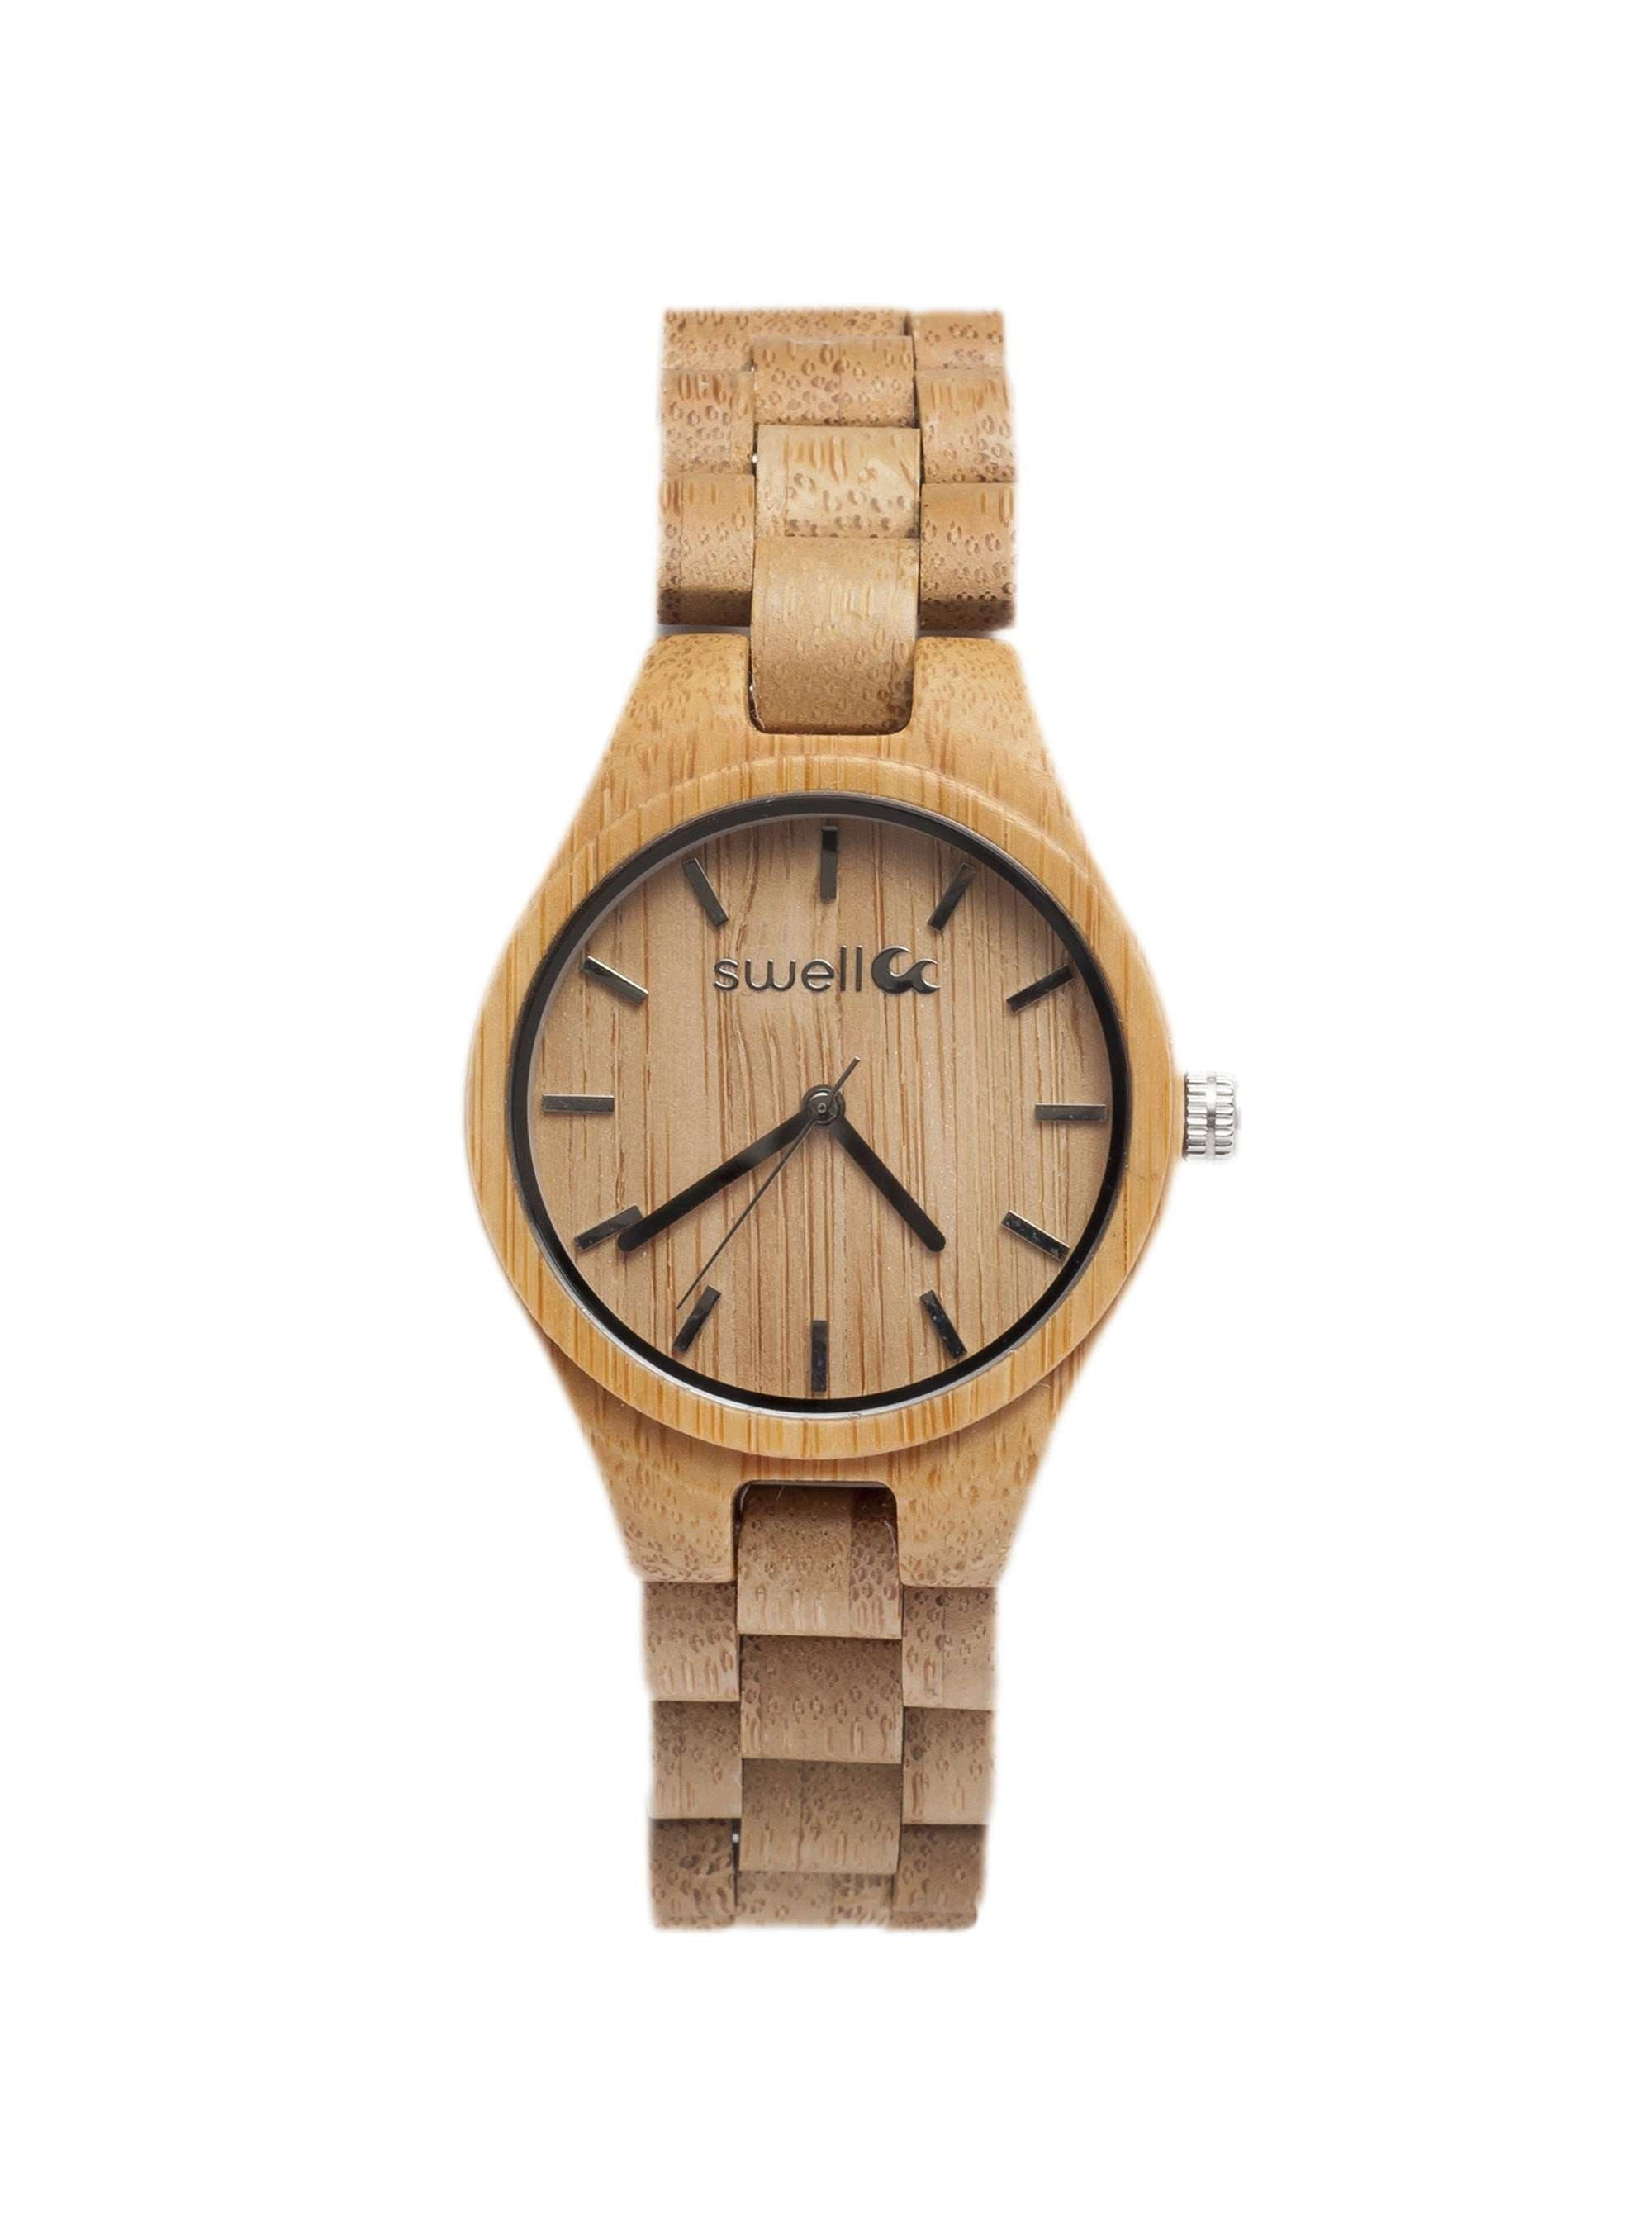 sell wood casual women relogio watches quartz wooden wrist watch dress uwood products luxury bamboo brand top men mens hot exquisitegroomingkit